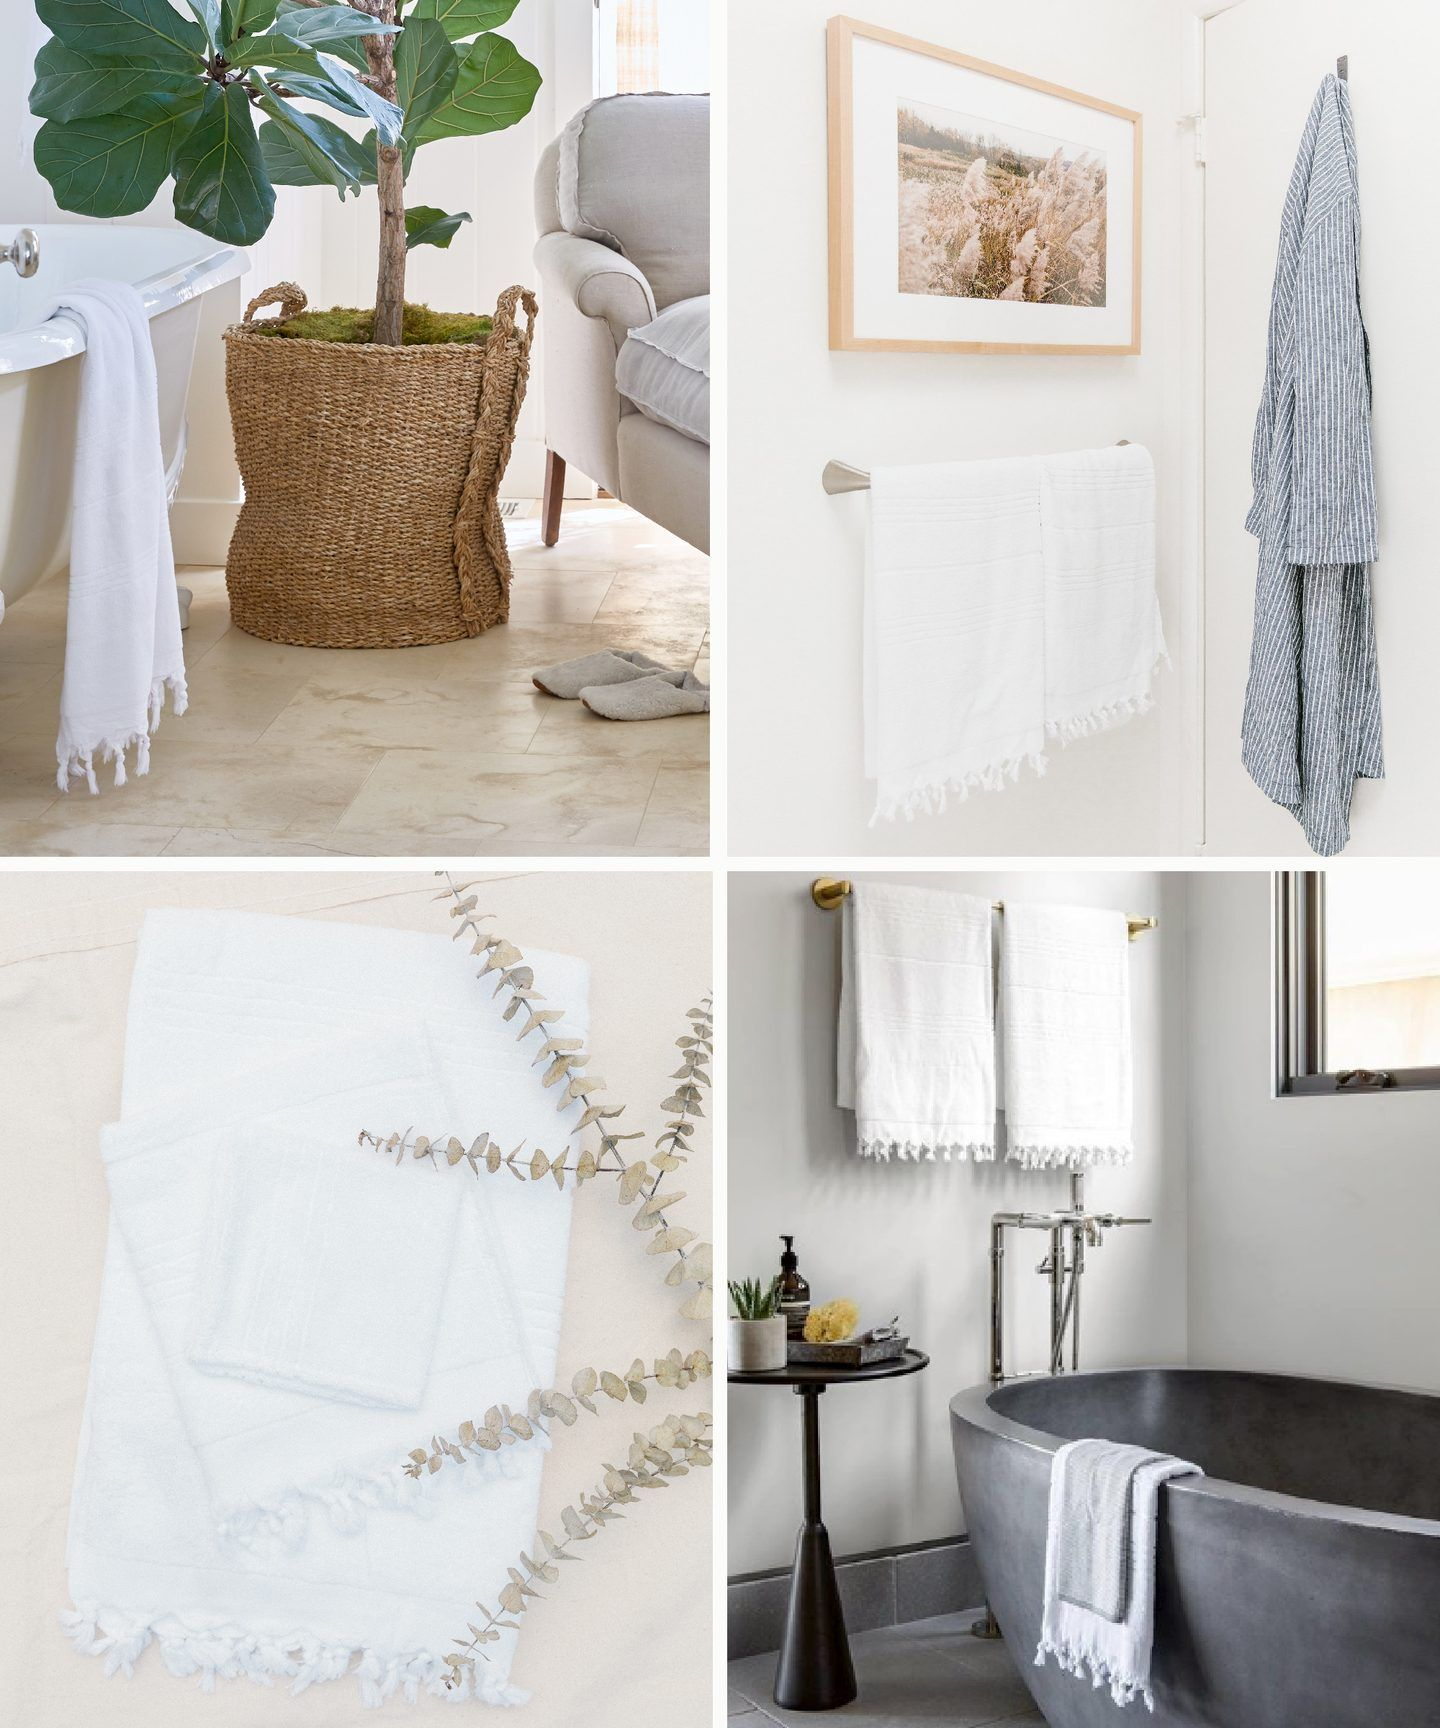 Turkish Bath Towel In 2019 Jenni Kayne Home Goods Turkish Bath